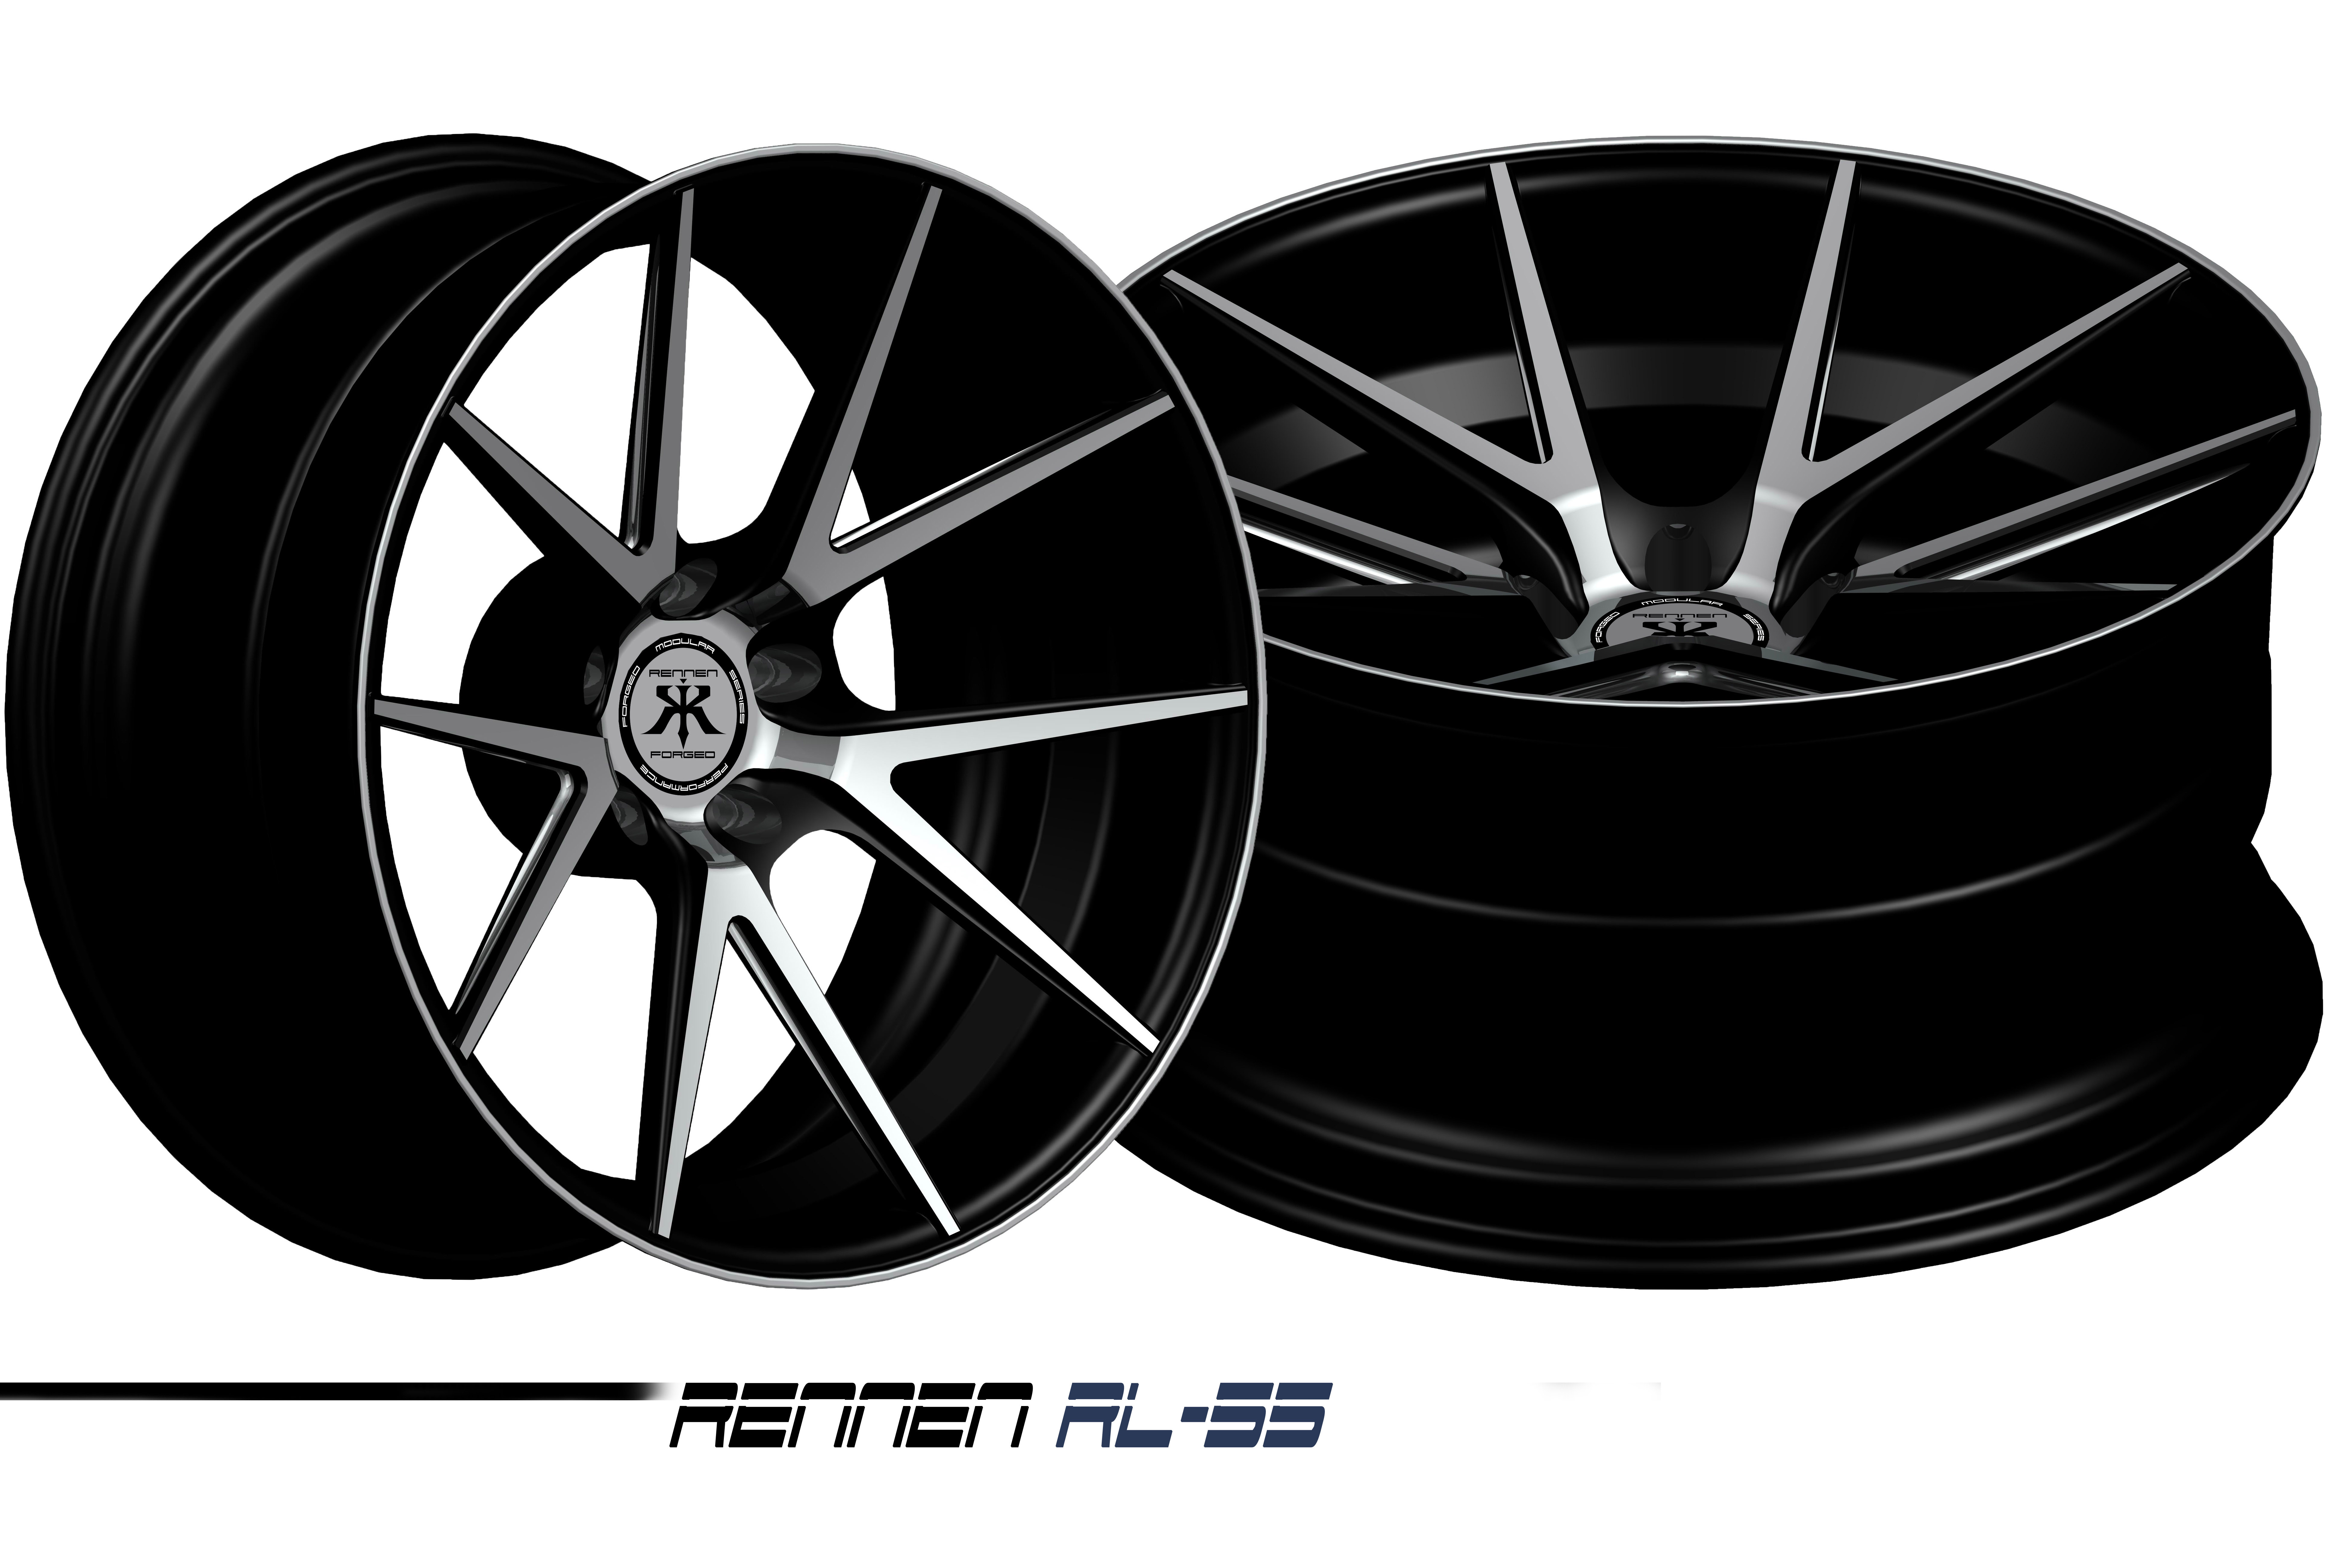 Wanted cars for photoshoot on new rennen forged wheels